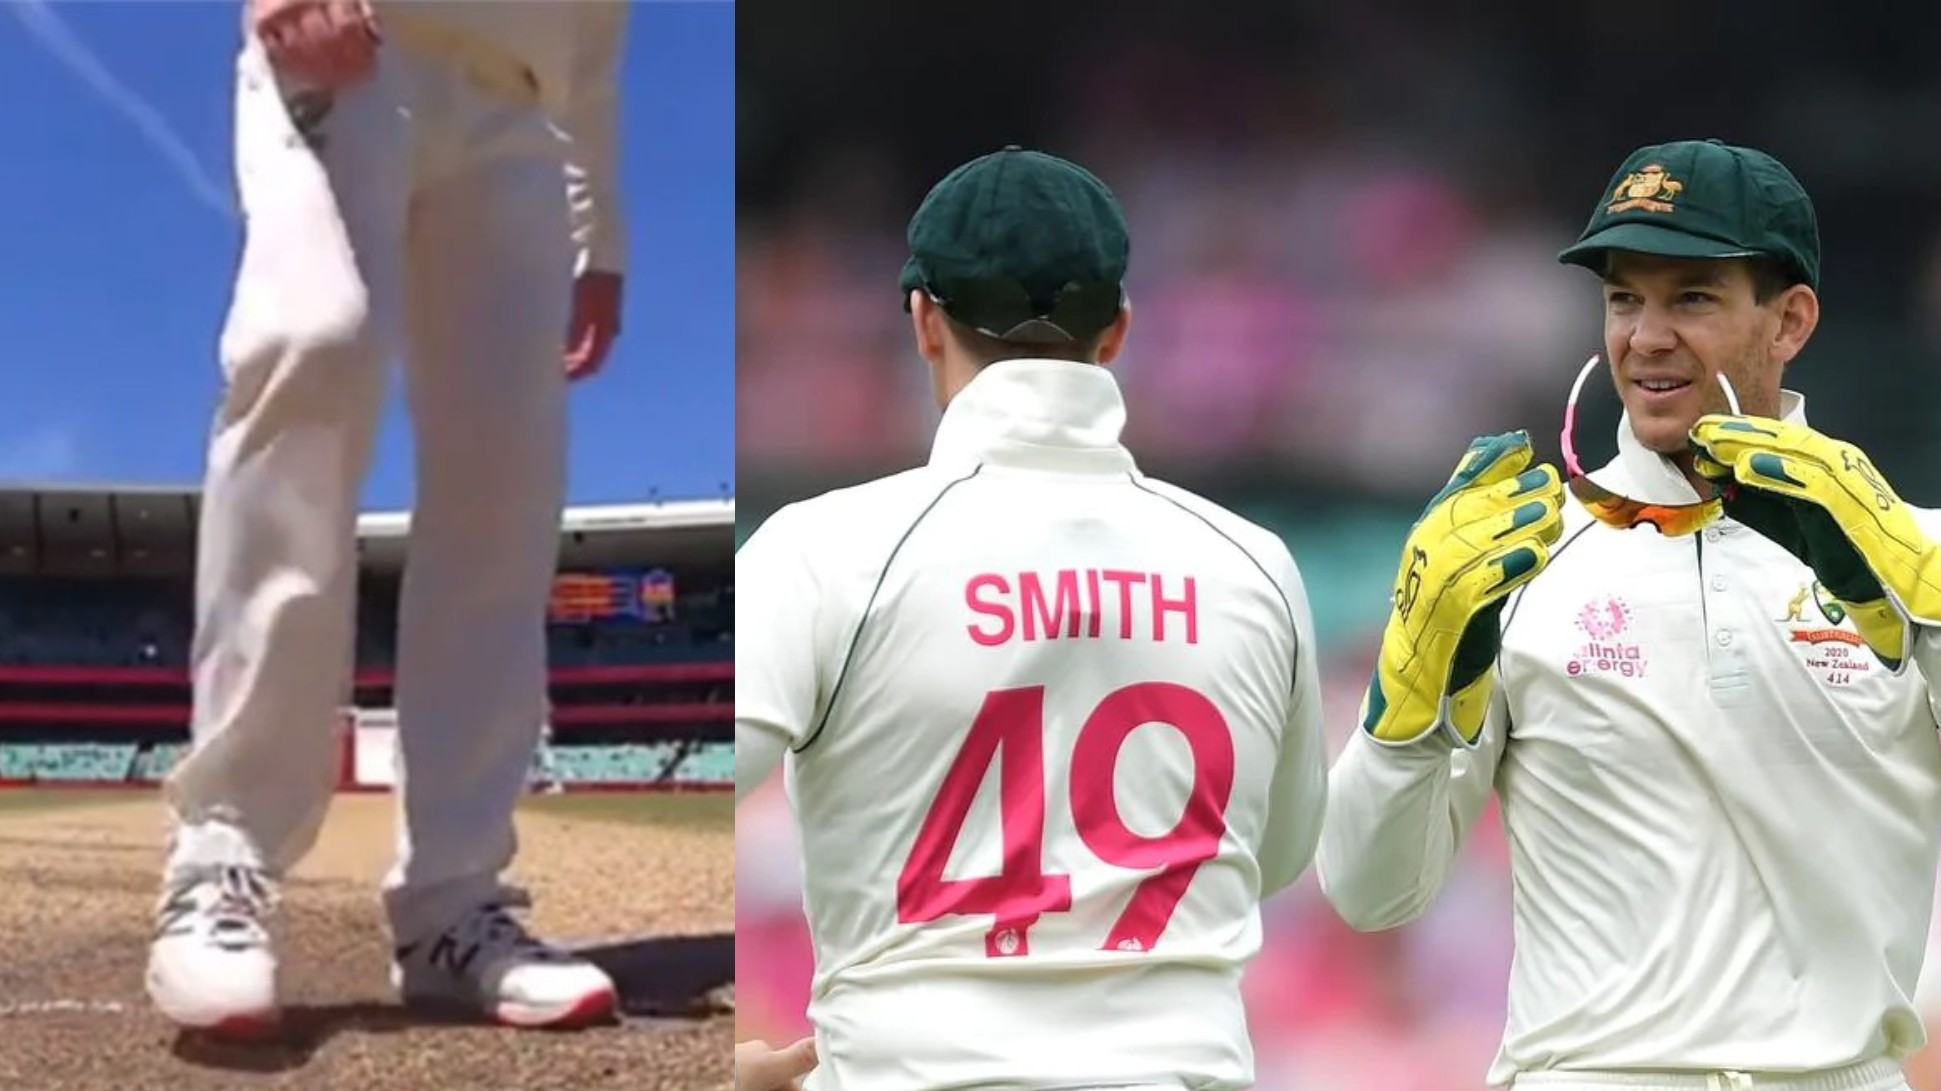 """AUS v IND 2020-21: Paine defends Smith """"he wasn't scuffing the guard, Indians would've complained if he did"""""""